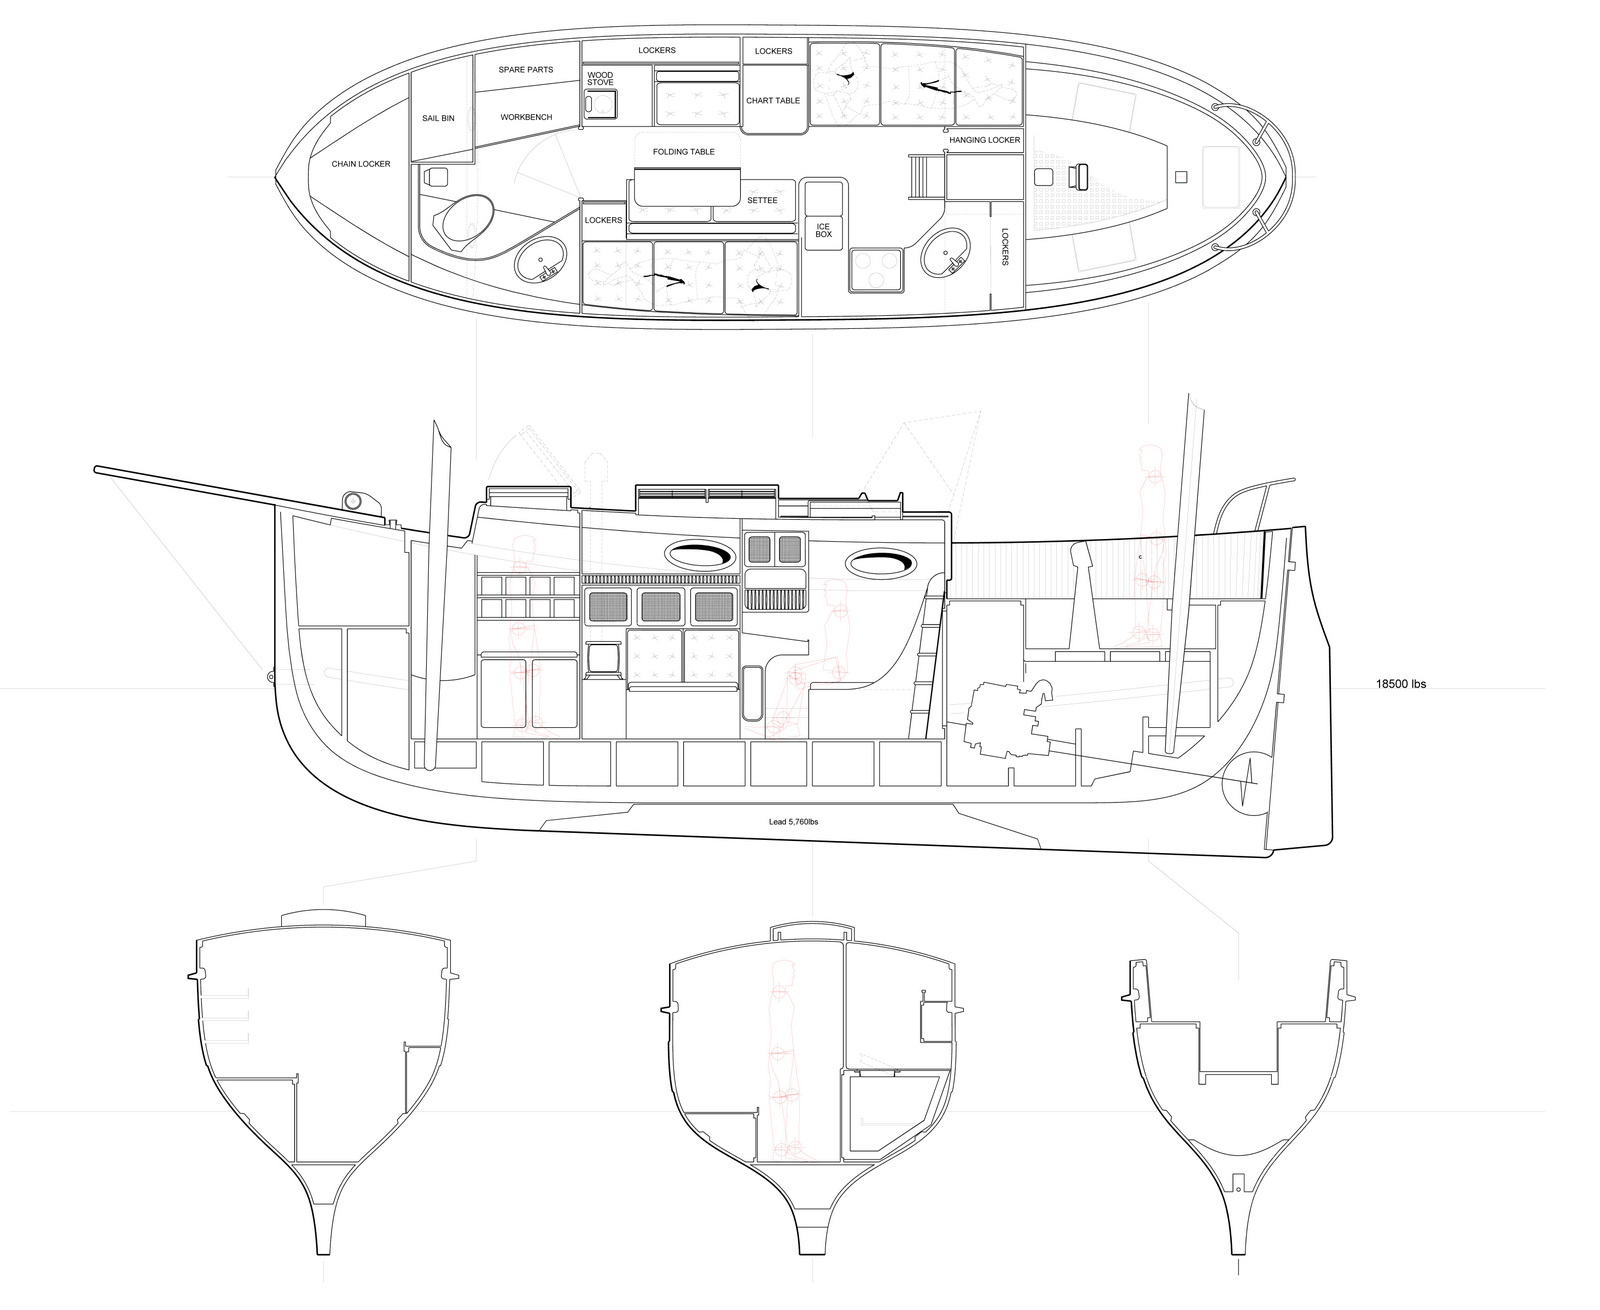 ' ' from the web at 'https://www.clcboats.com/images/blog/Bigger%20PocketShip/Fifie%20Yacht%20-%20Plan%20and%20Elevation%20II.jpg'